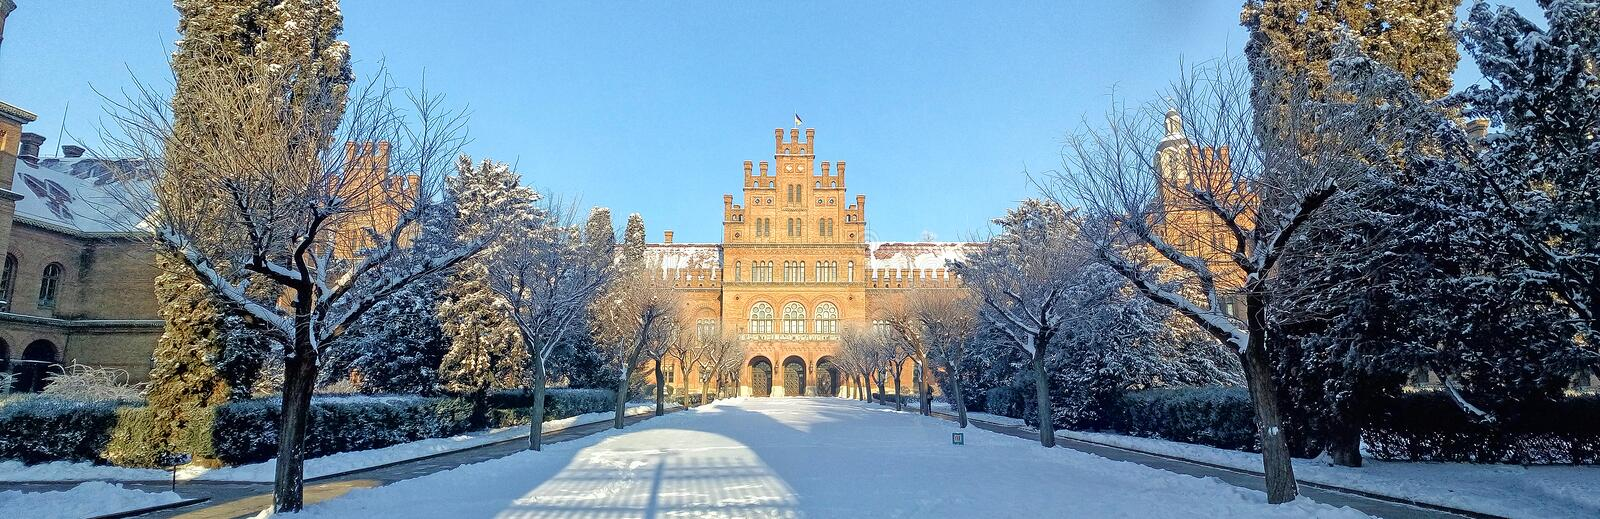 Yuriy Fedkovych Chernivtsi National University. Chernivtsi National University full name Yuriy Fedkovych Chernivtsi National University Ukrainian royalty free stock photo